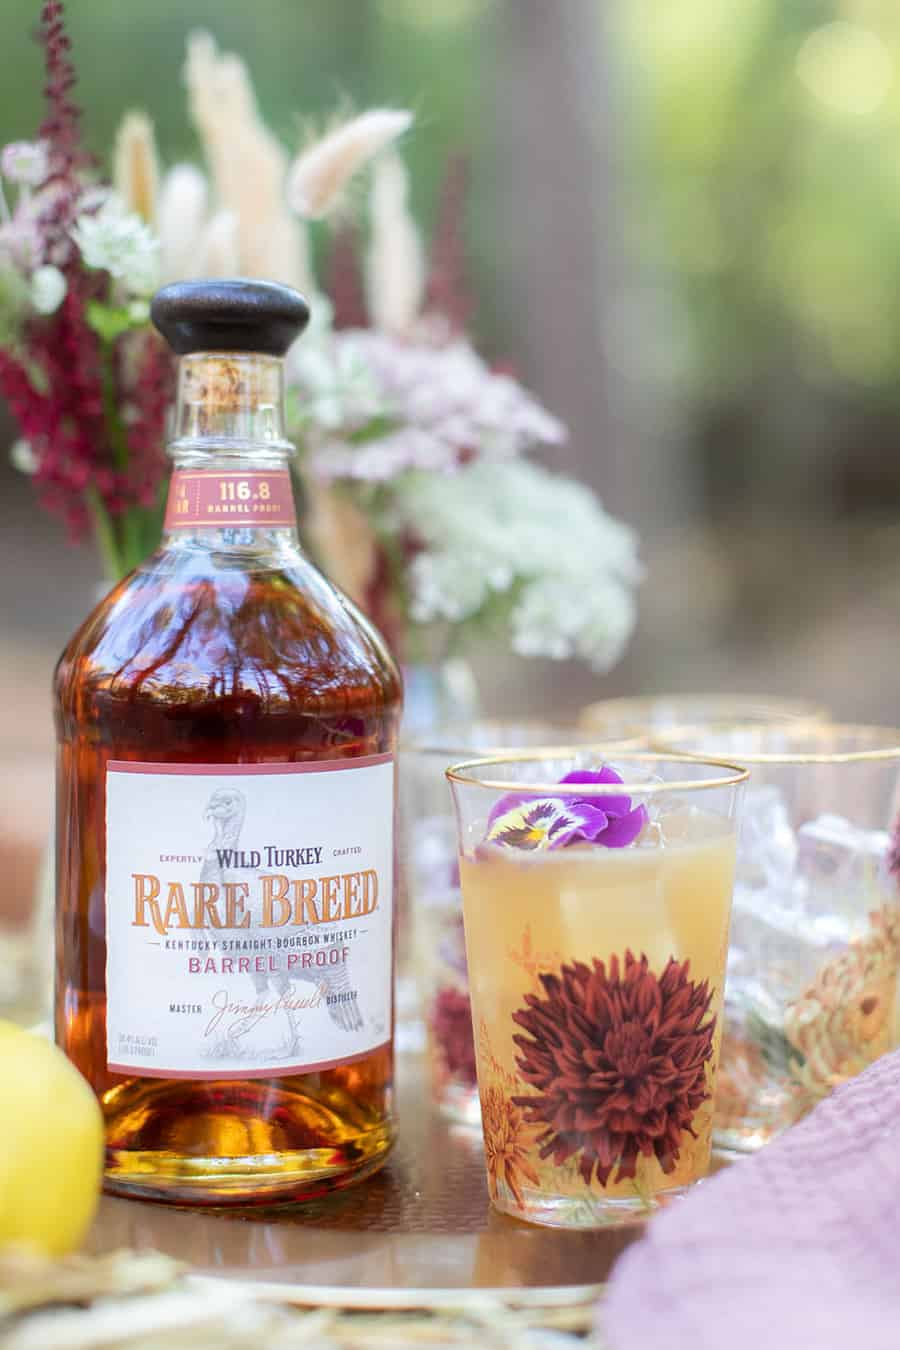 Wild Turkey Bourbon cocktail in a floral cup.